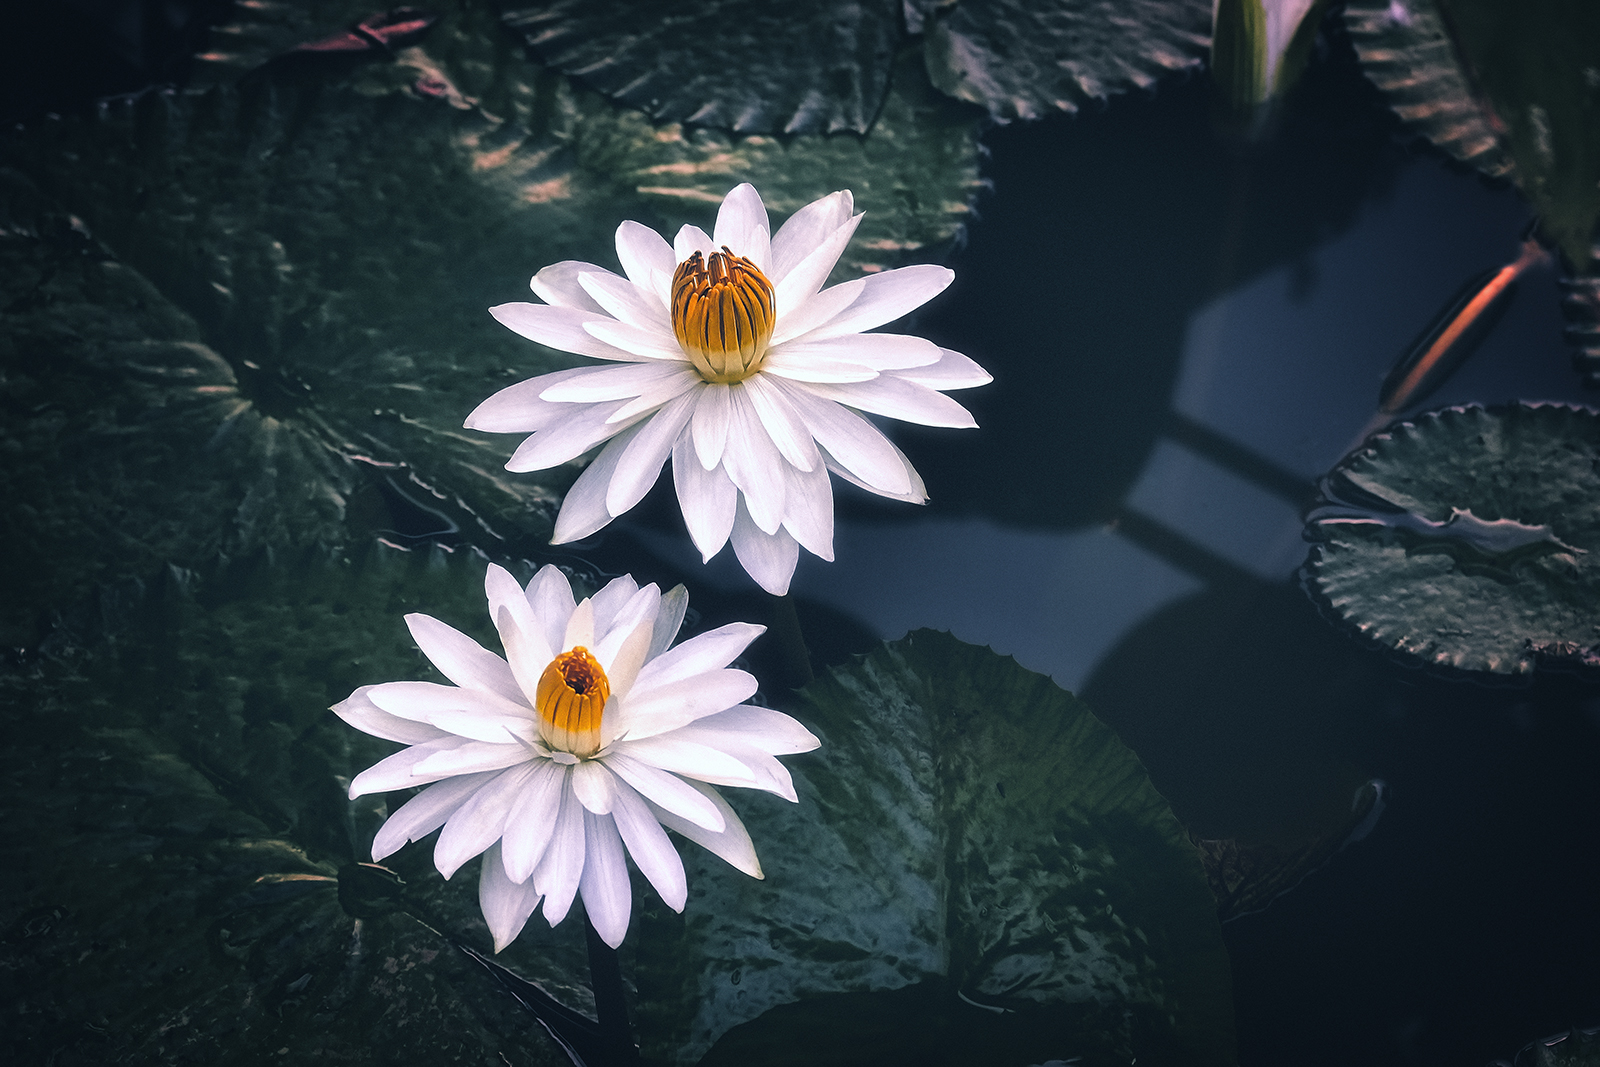 A pair of White Lotus in the Pond